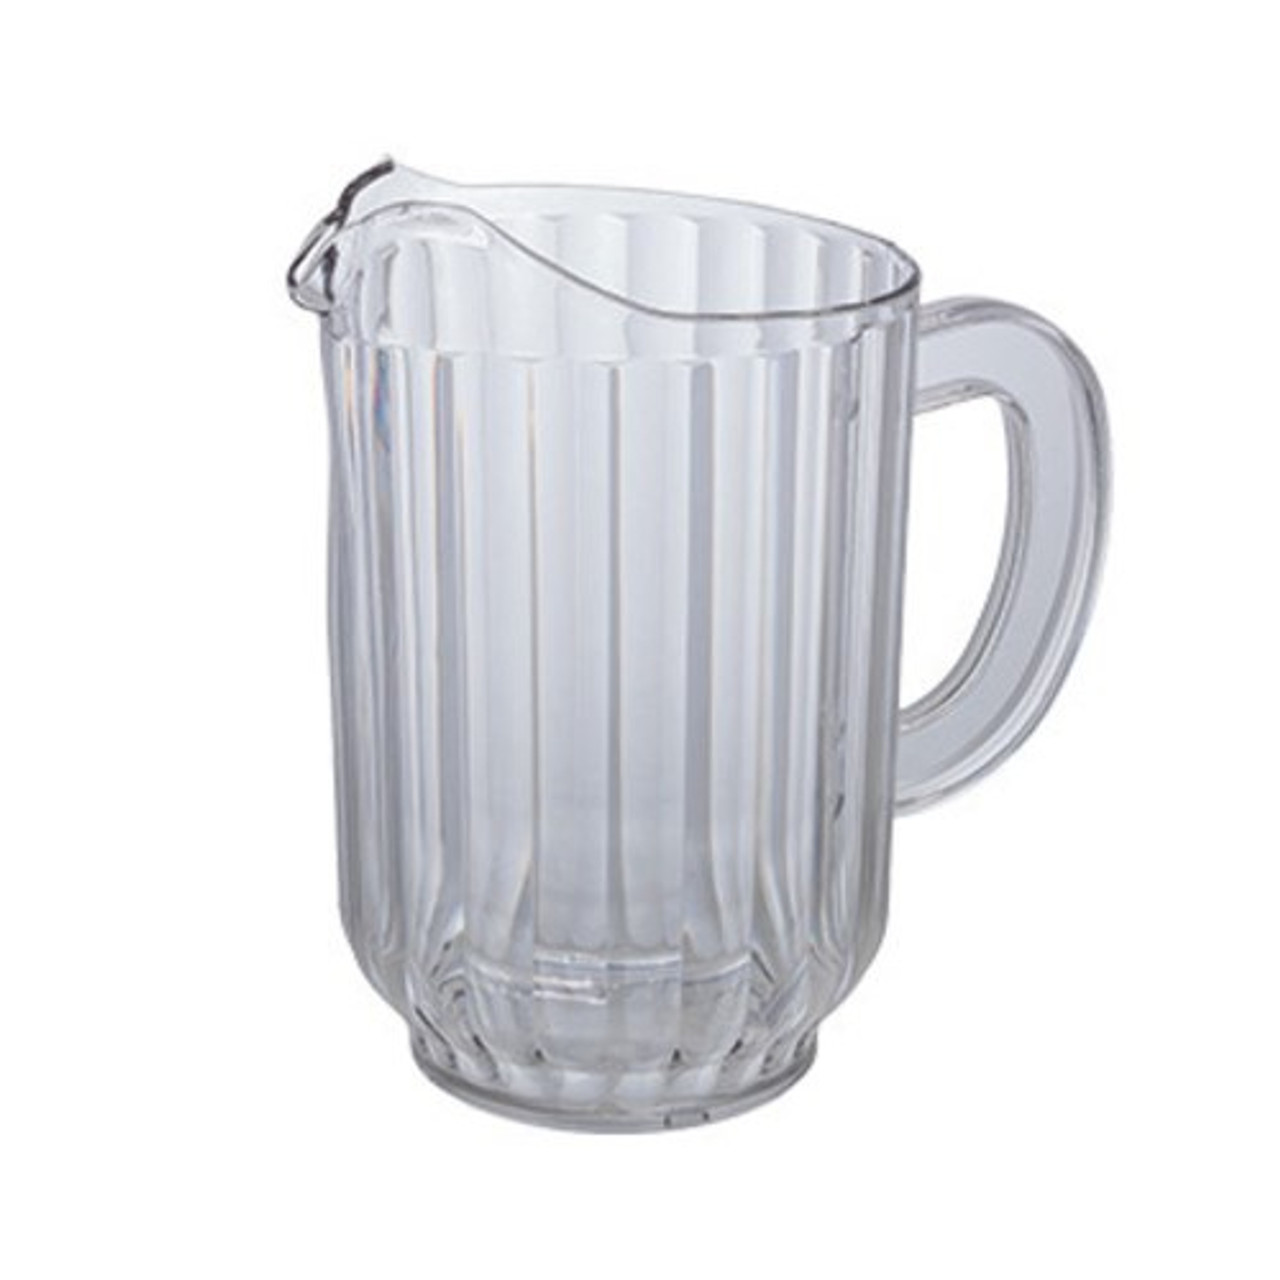 Water Pitcher, 60 oz., polycarbonate, clear, NSF